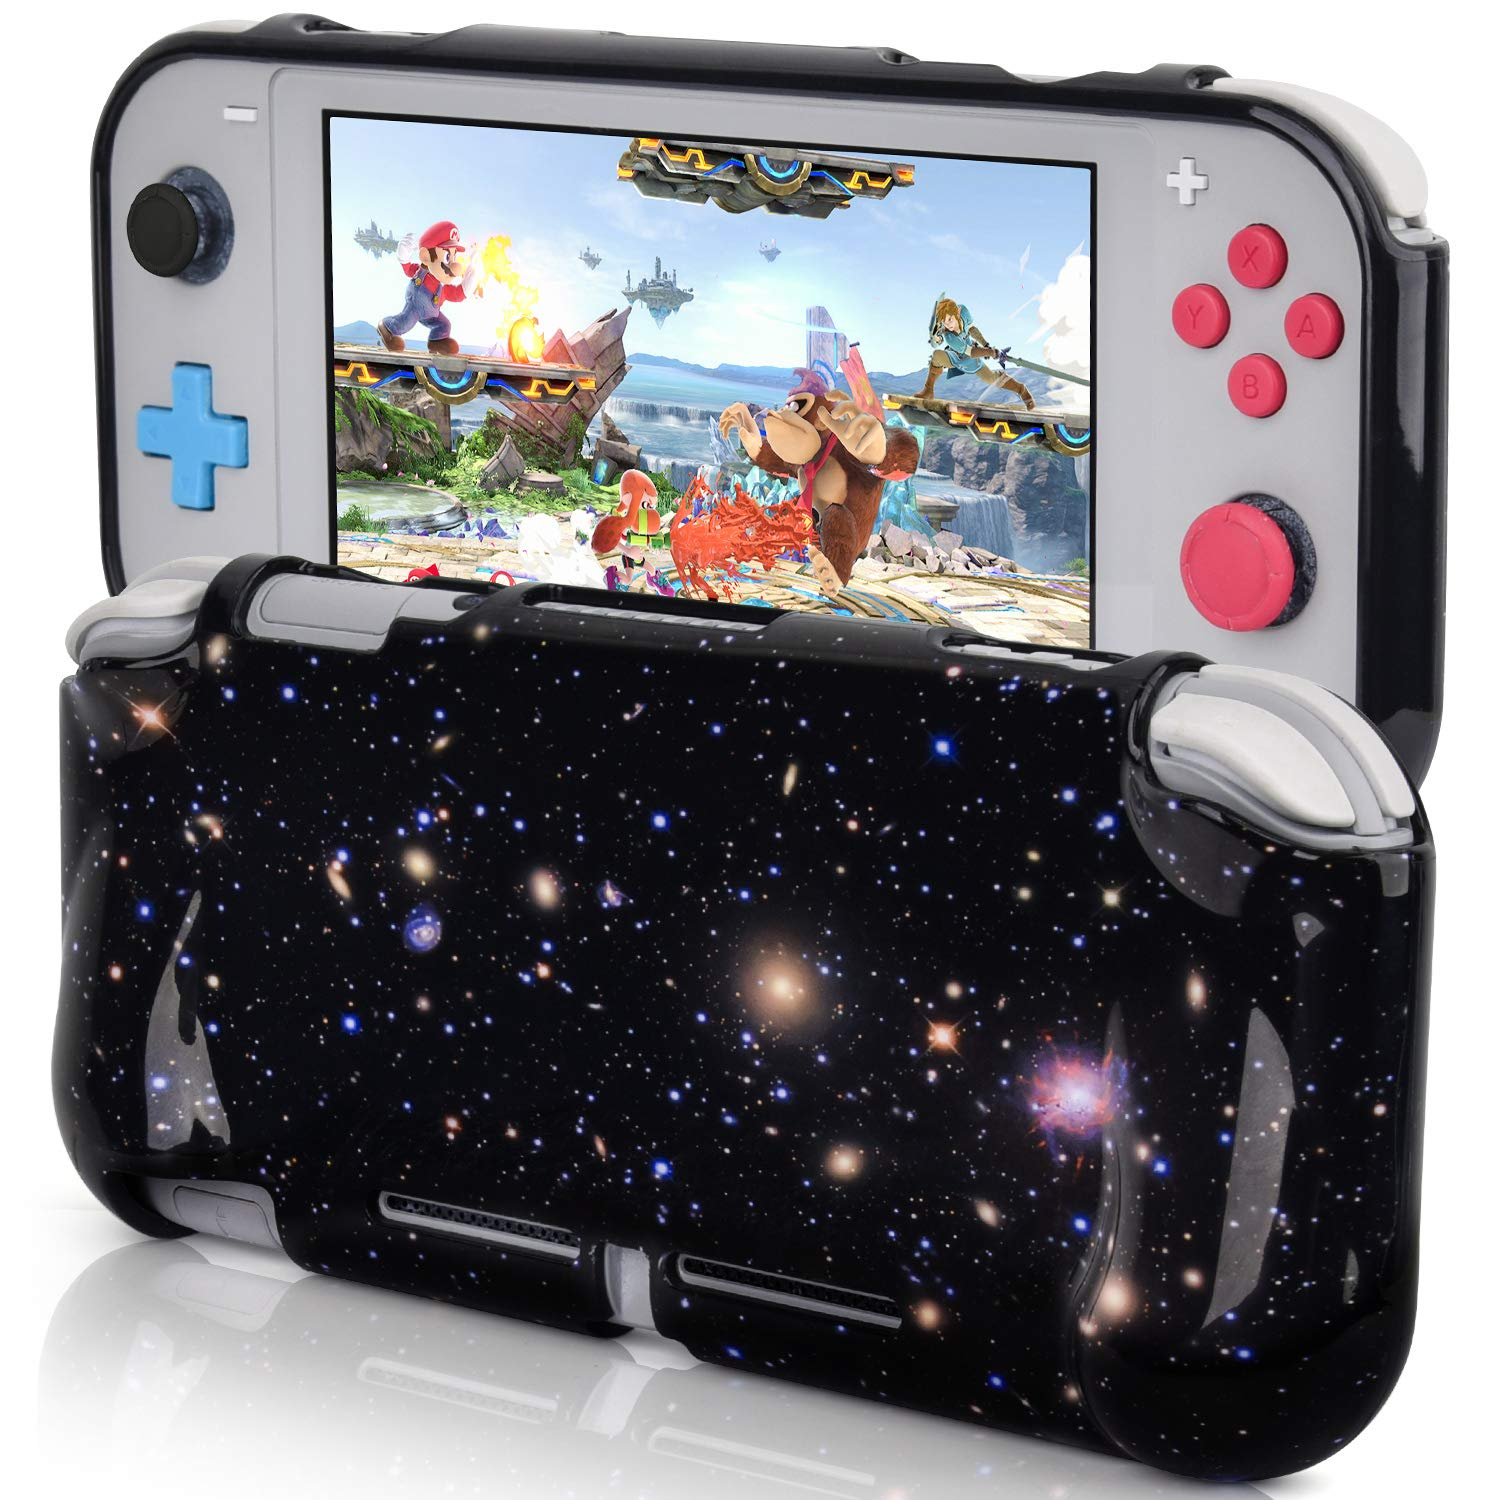 CAGOS Protective Case Compatible with Nintendo Switch Lite, Hard Shell TPU Grip Skin Case Cover Shock-Absorption and Anti-Scratch Non-Slip Travel Case Nintendo Switch Lite Accessories - Galaxy